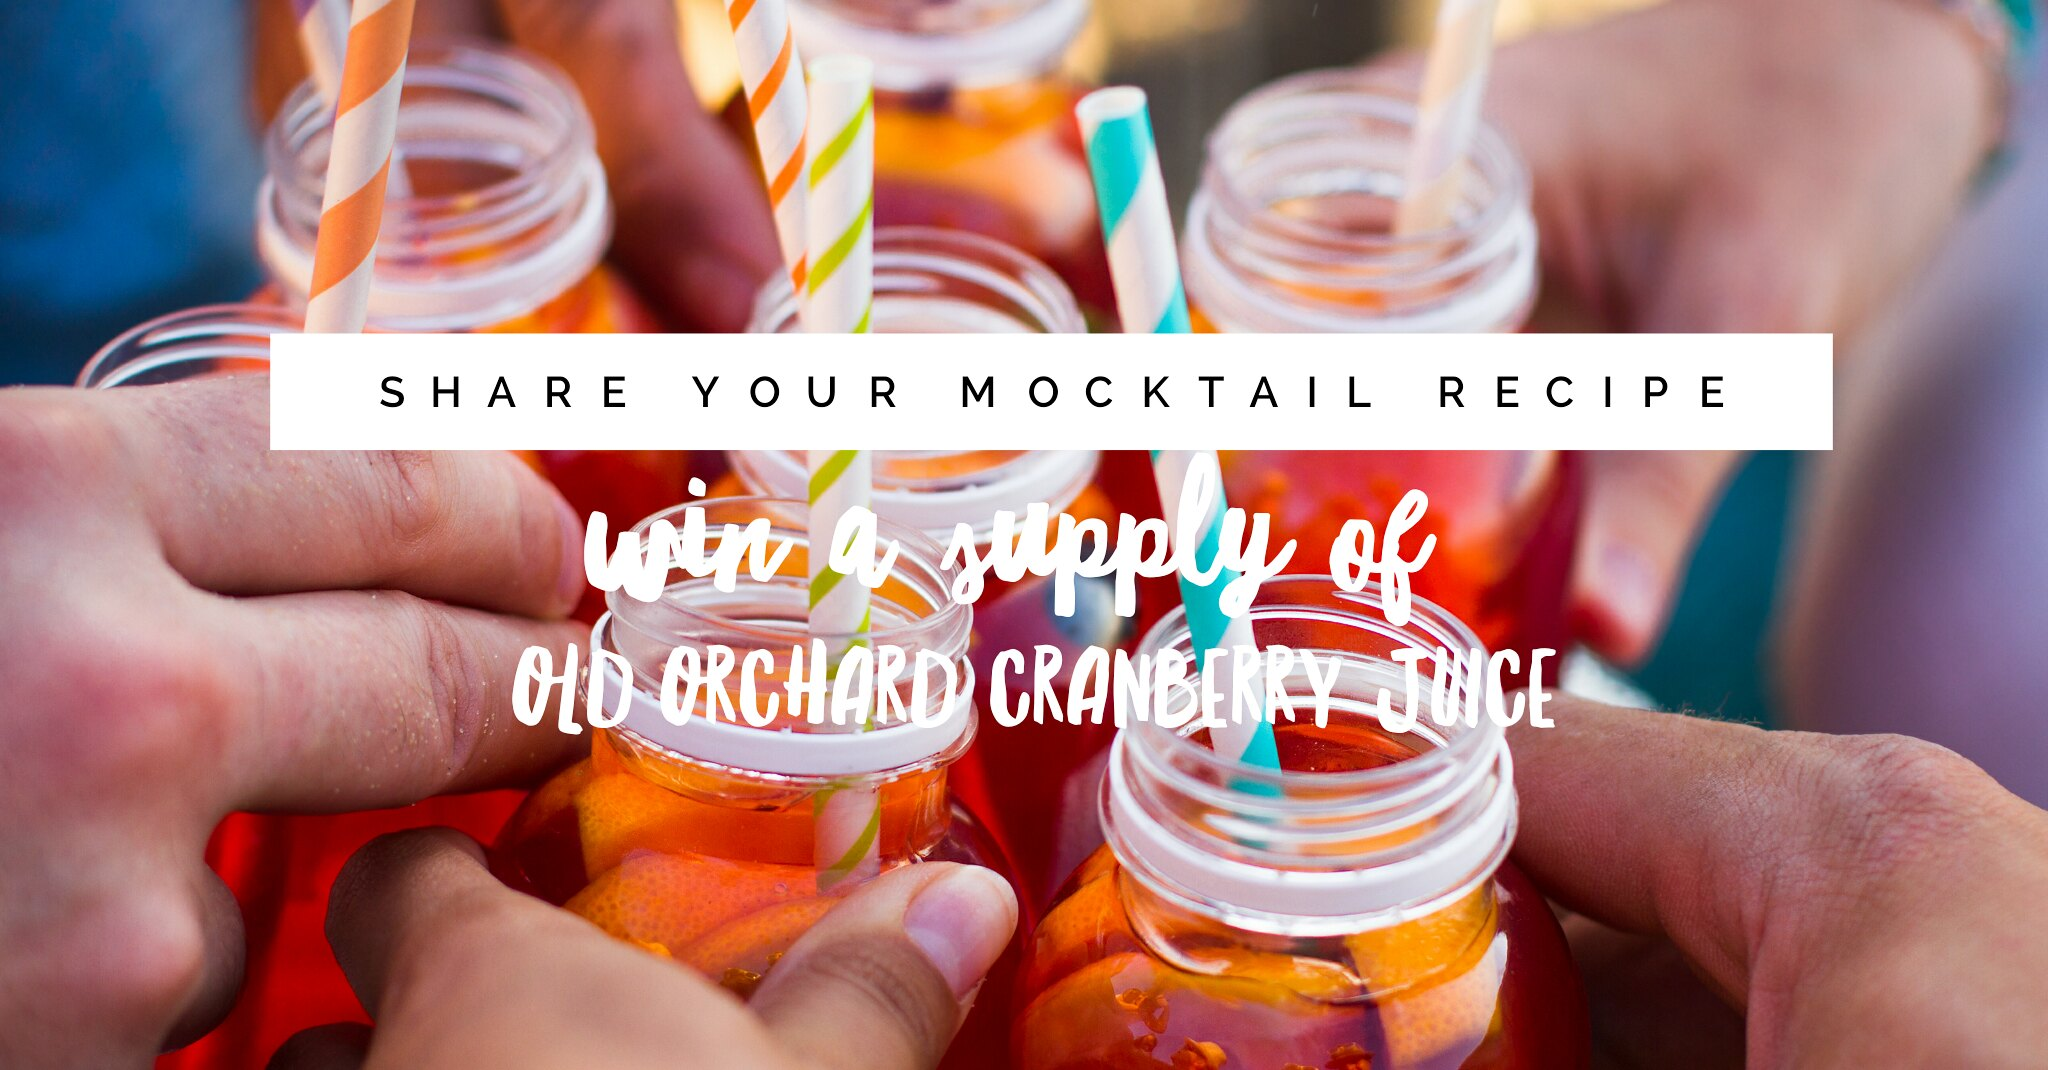 Share Your Mocktail Recipe and Win a Supply of Old Orchard Cranberry Juice